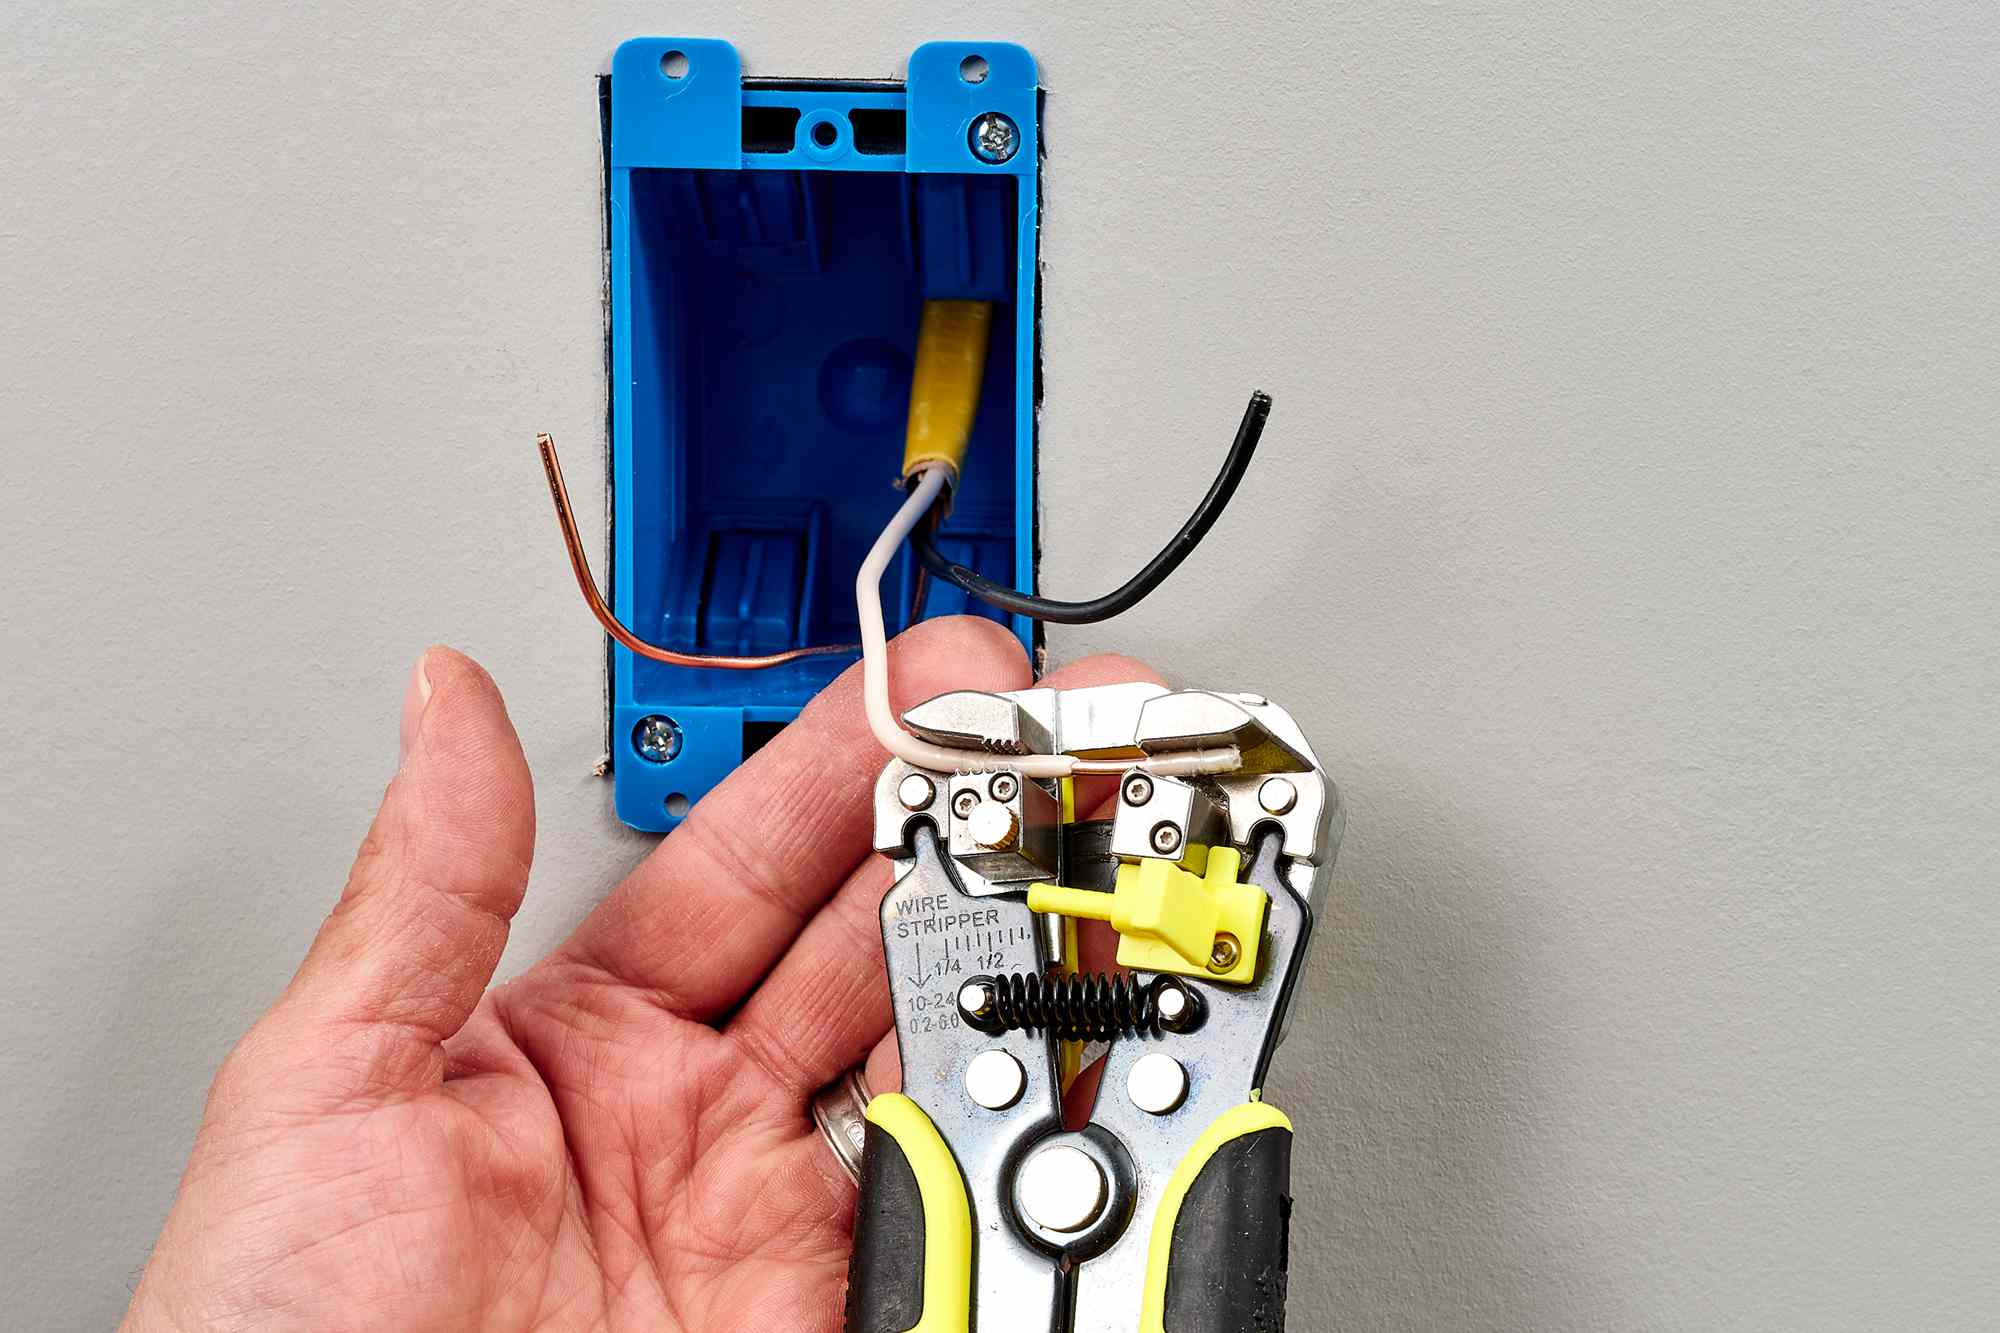 Wire strippers stripping insulation from wires